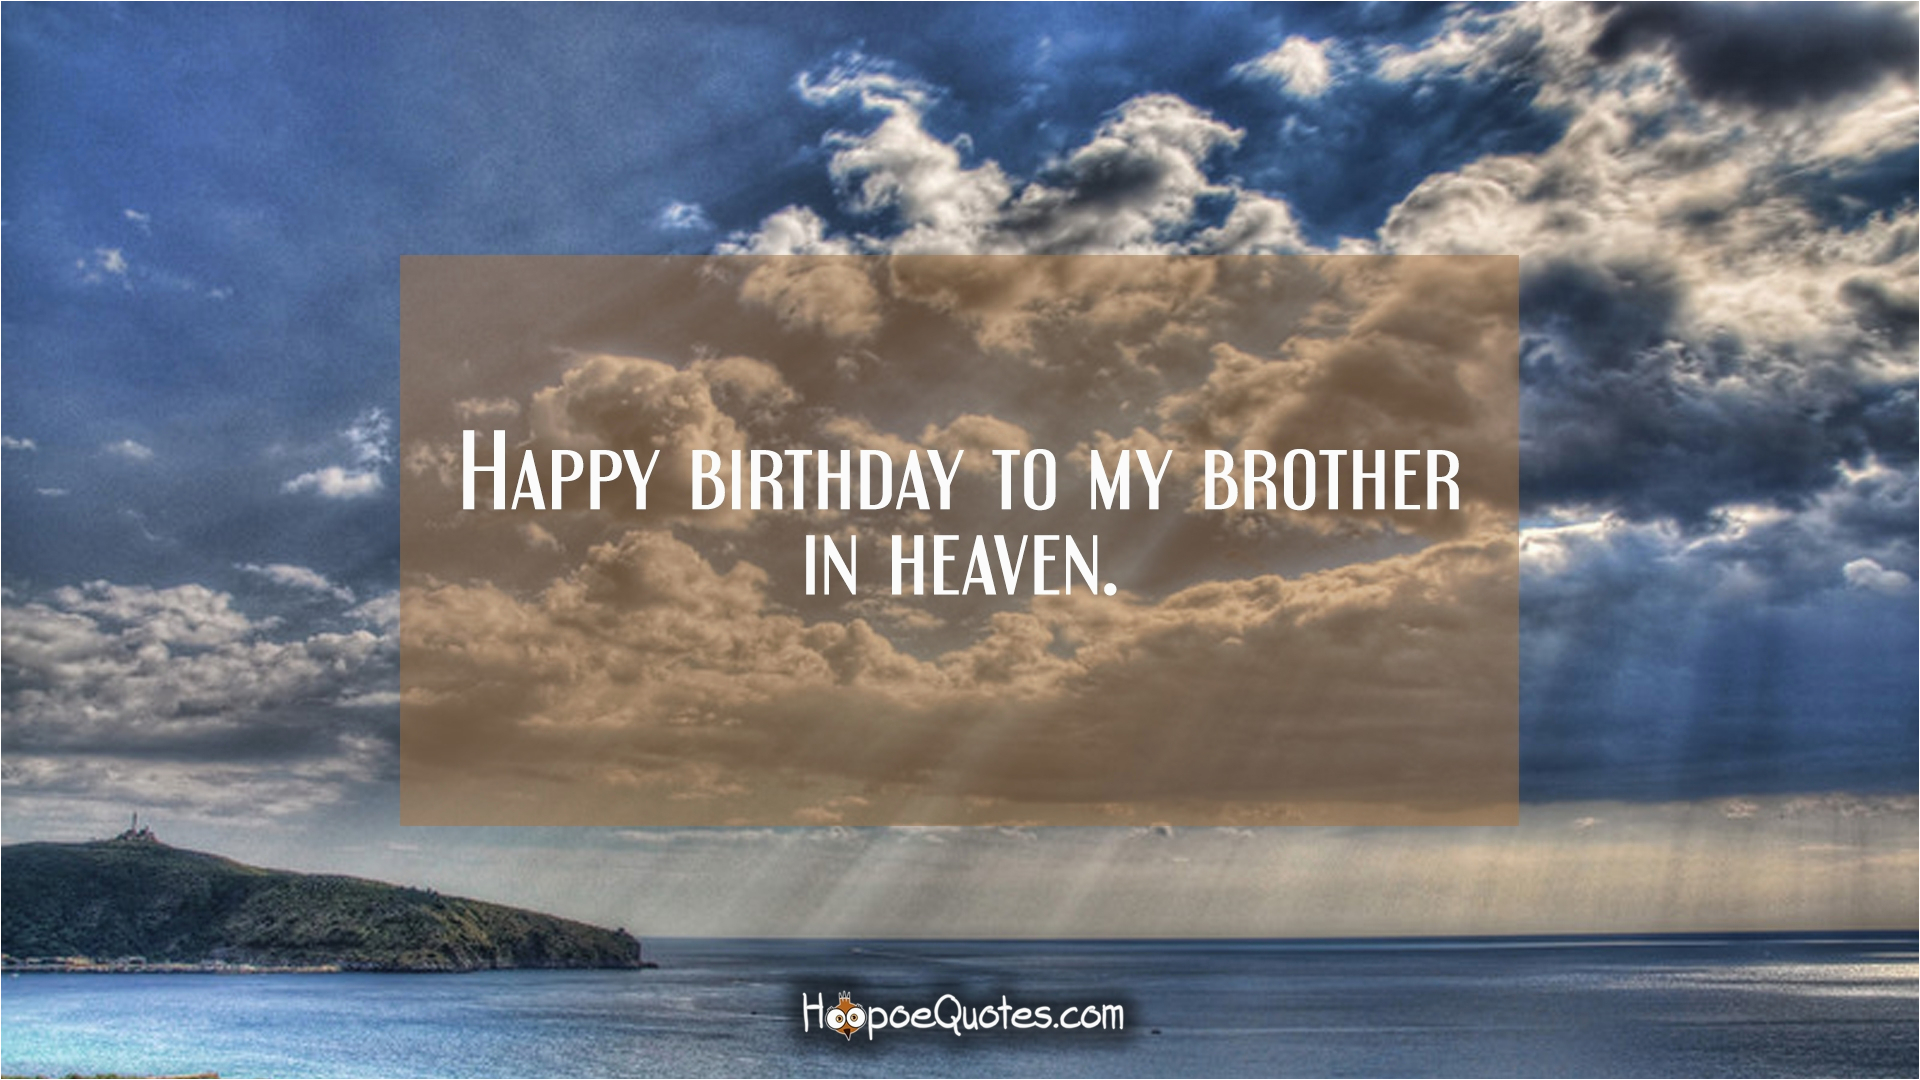 36227 happy birthday to my brother in heaven